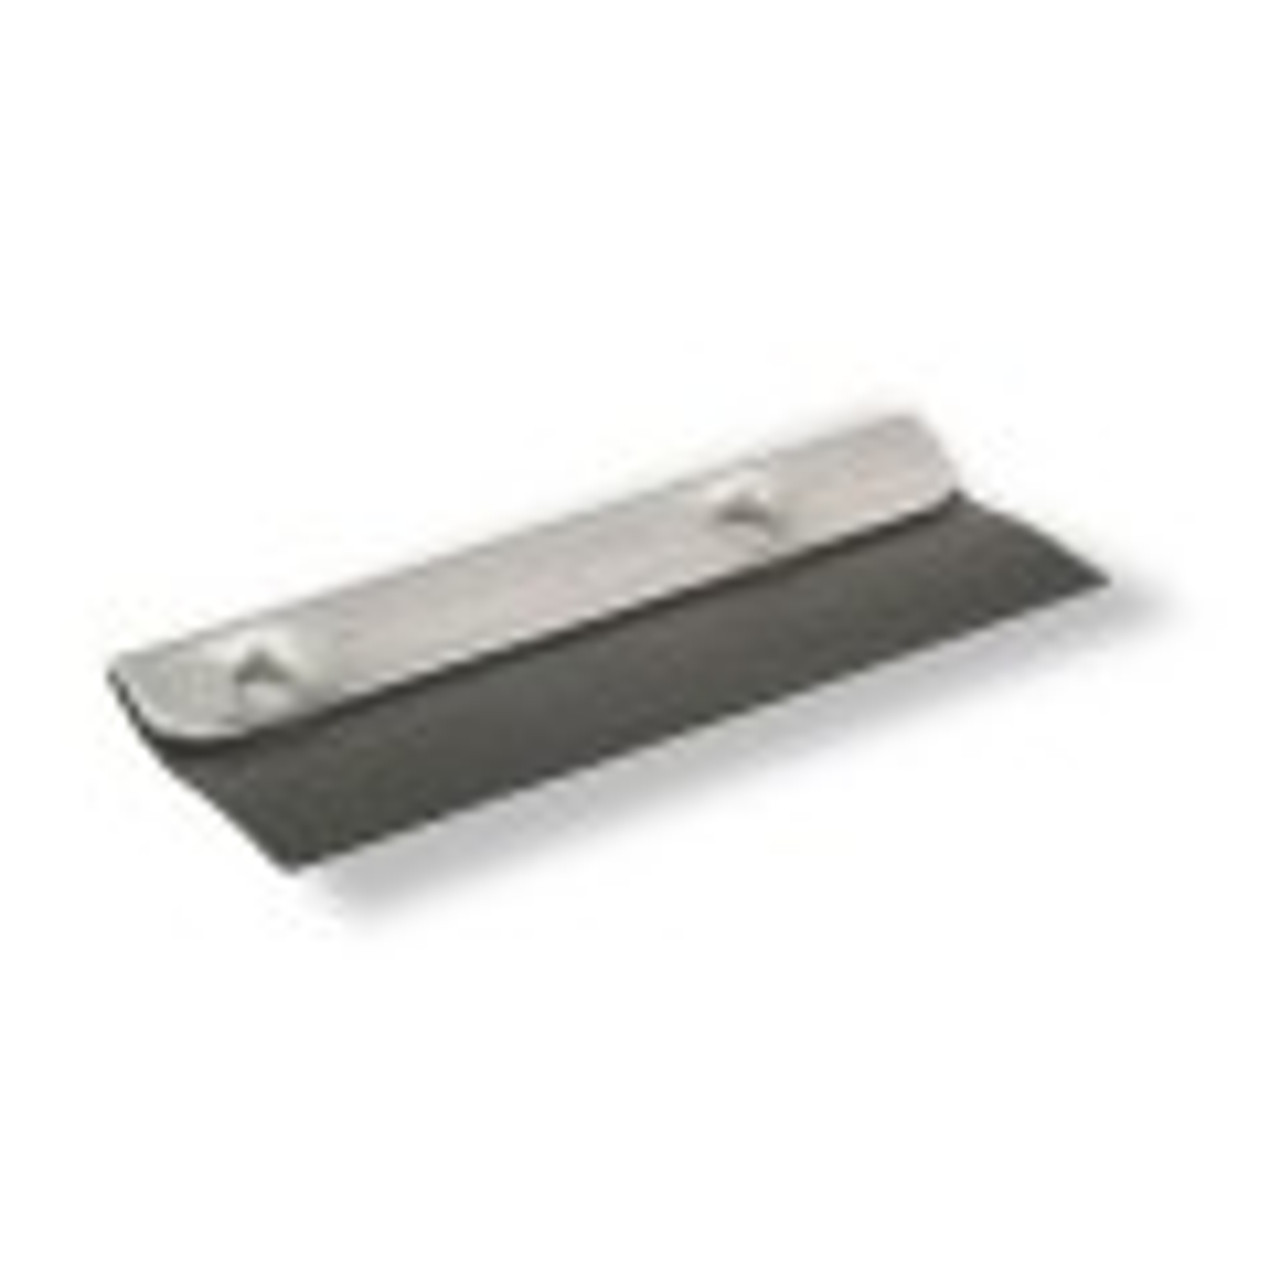 Chip Deflector for Lipping Planer